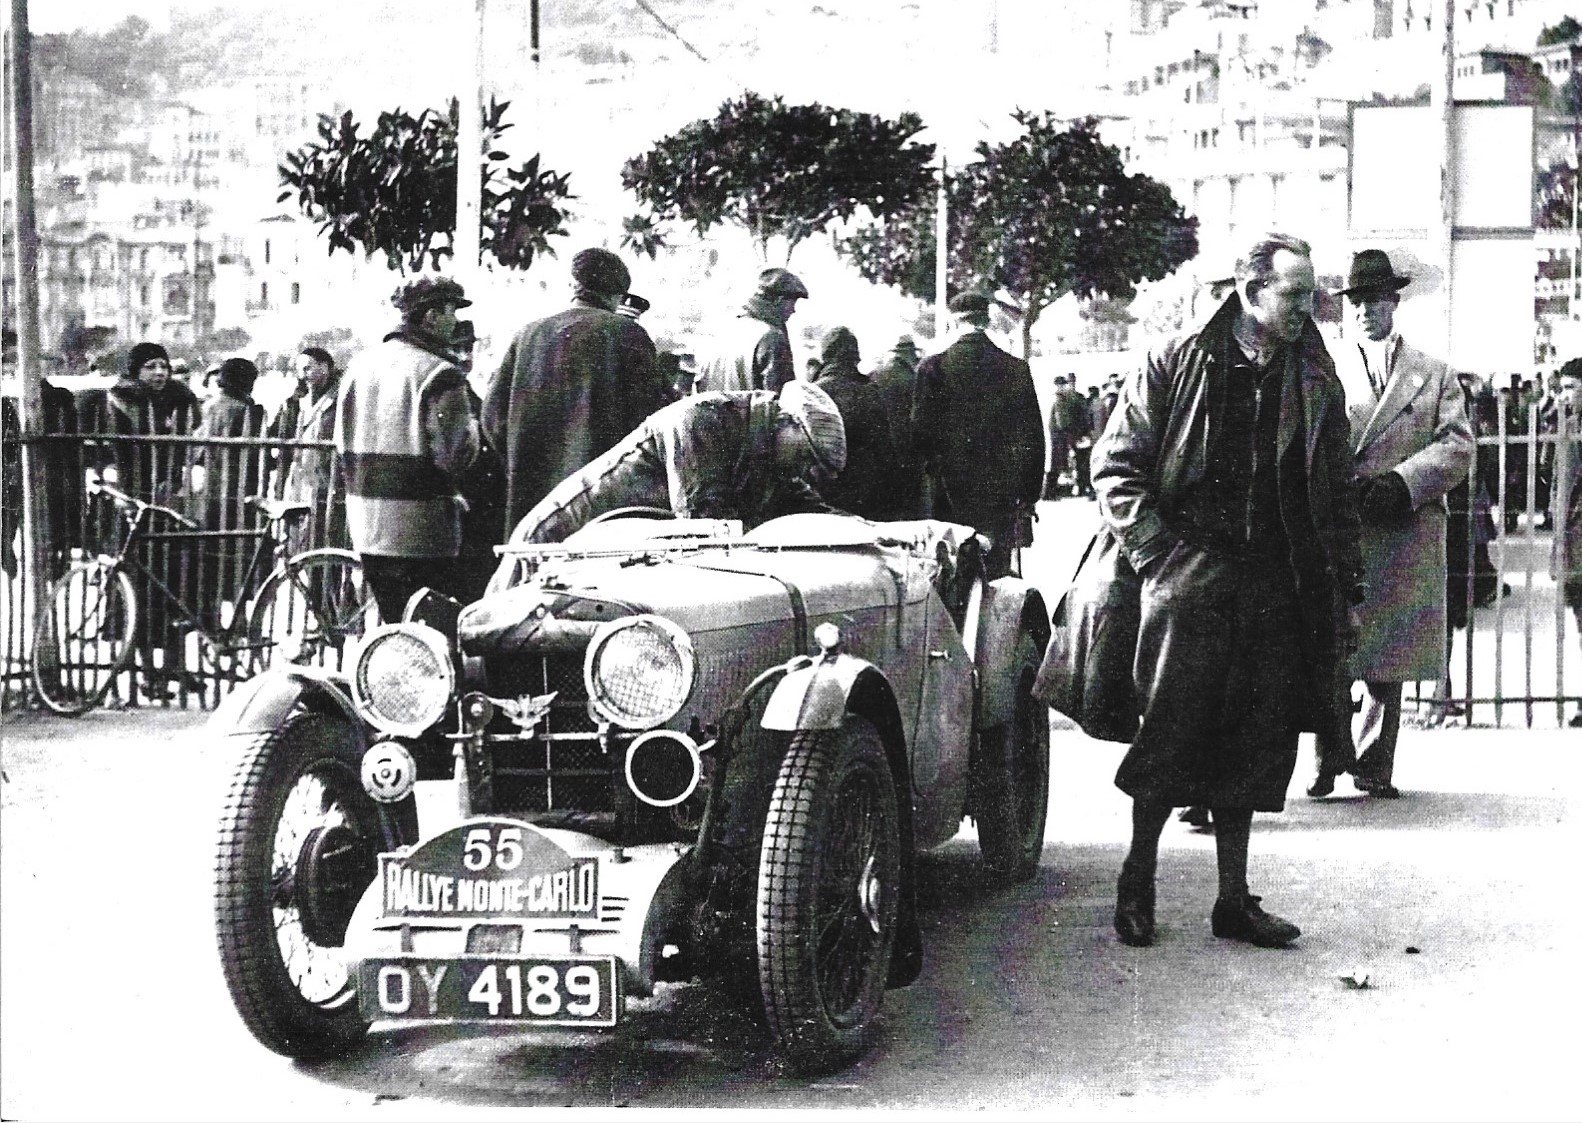 The MG J3 in January 1933. Platt and Archer arrive in Monaco after 2,000 miles of snow and ice from John O'Groats - the worst weather for many years. Note the winged badge in front of the radiator. This is the Southport Motor Racing Club Badge which Nev Churcher is keen to obtain. Mr Platt was an officer of the club, and the car went on to win many events at Southport